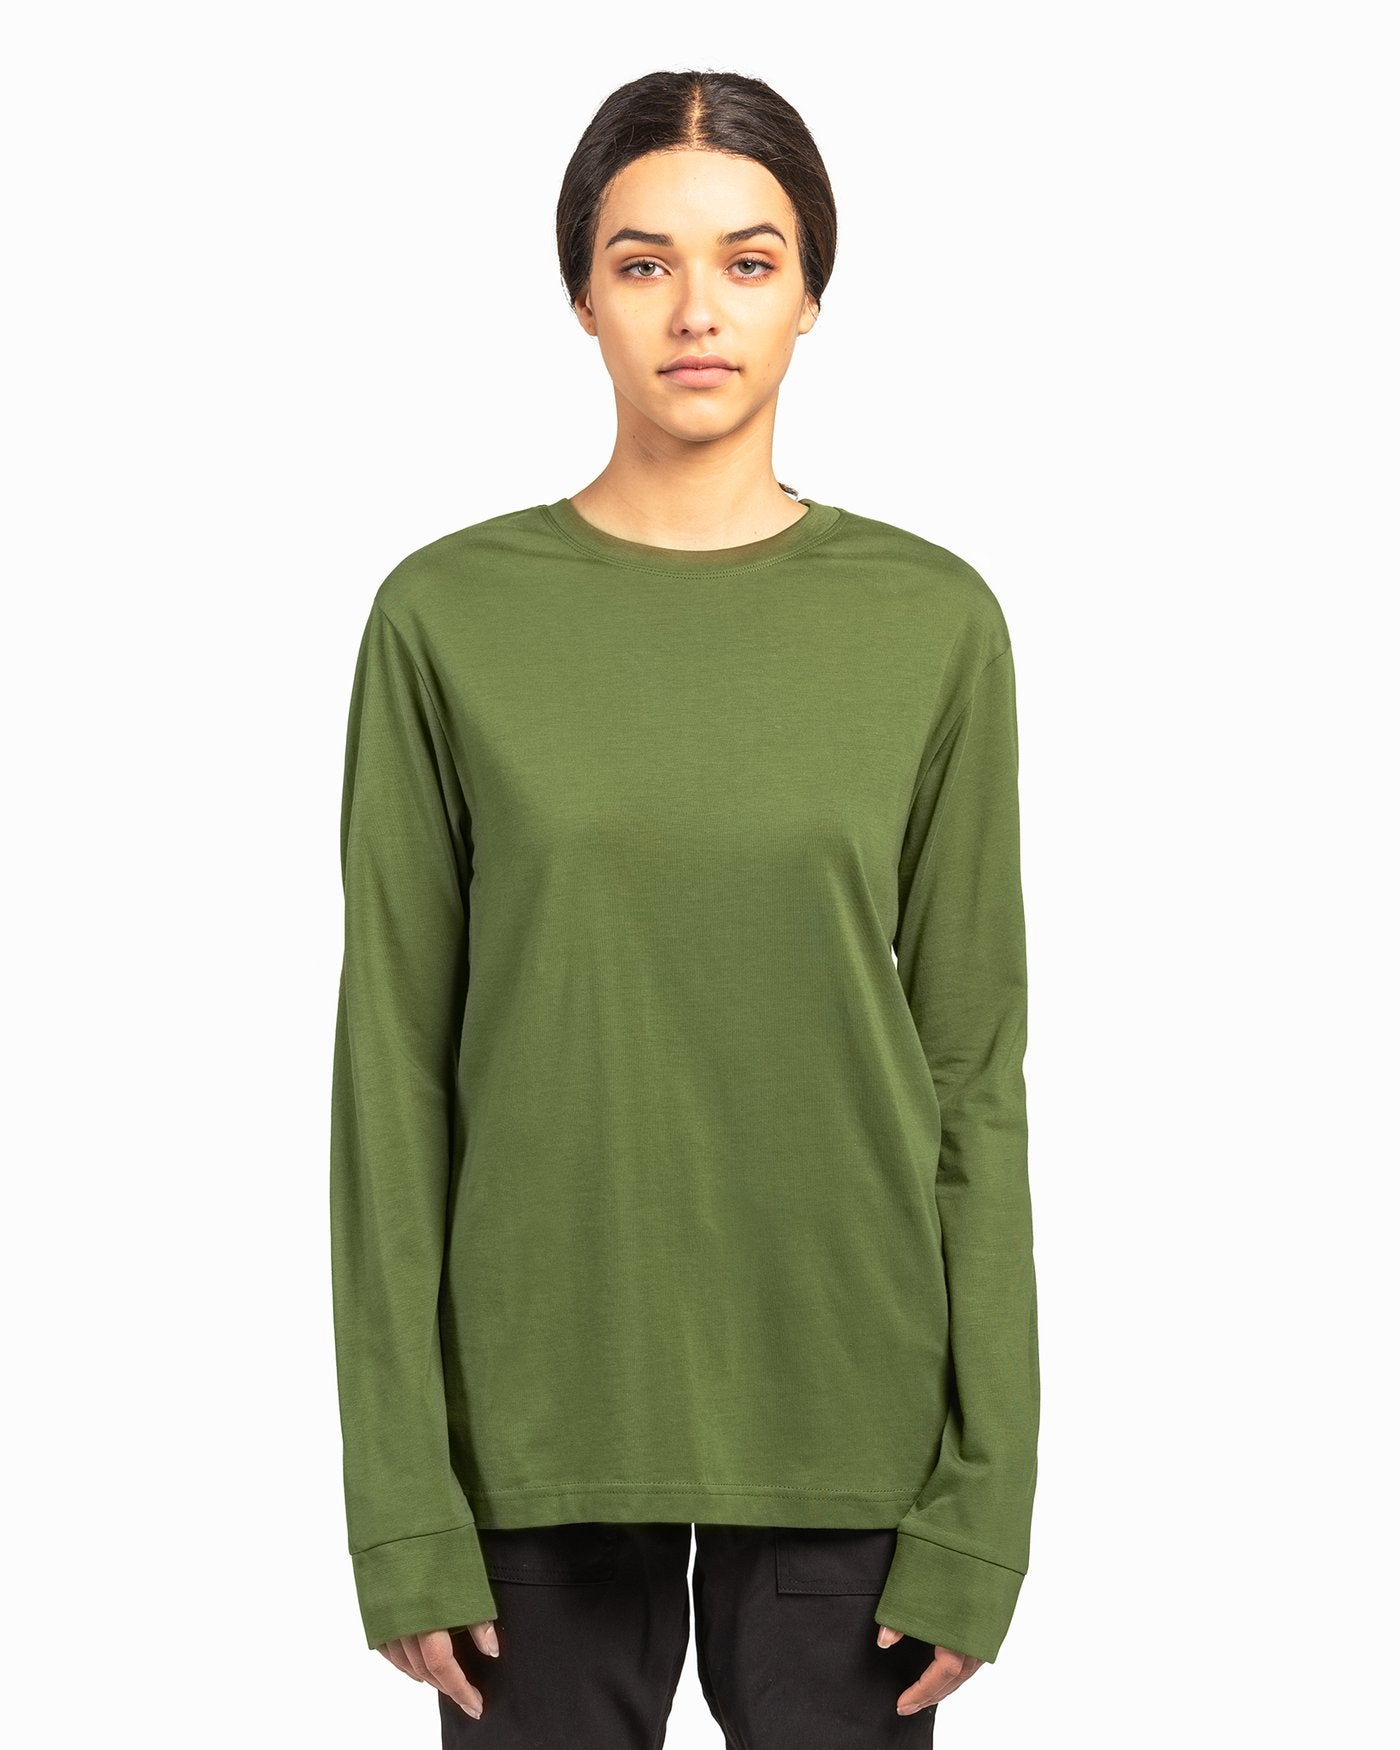 Olive Green American Grown Soft Supima® Cotton Men's Long Sleeve